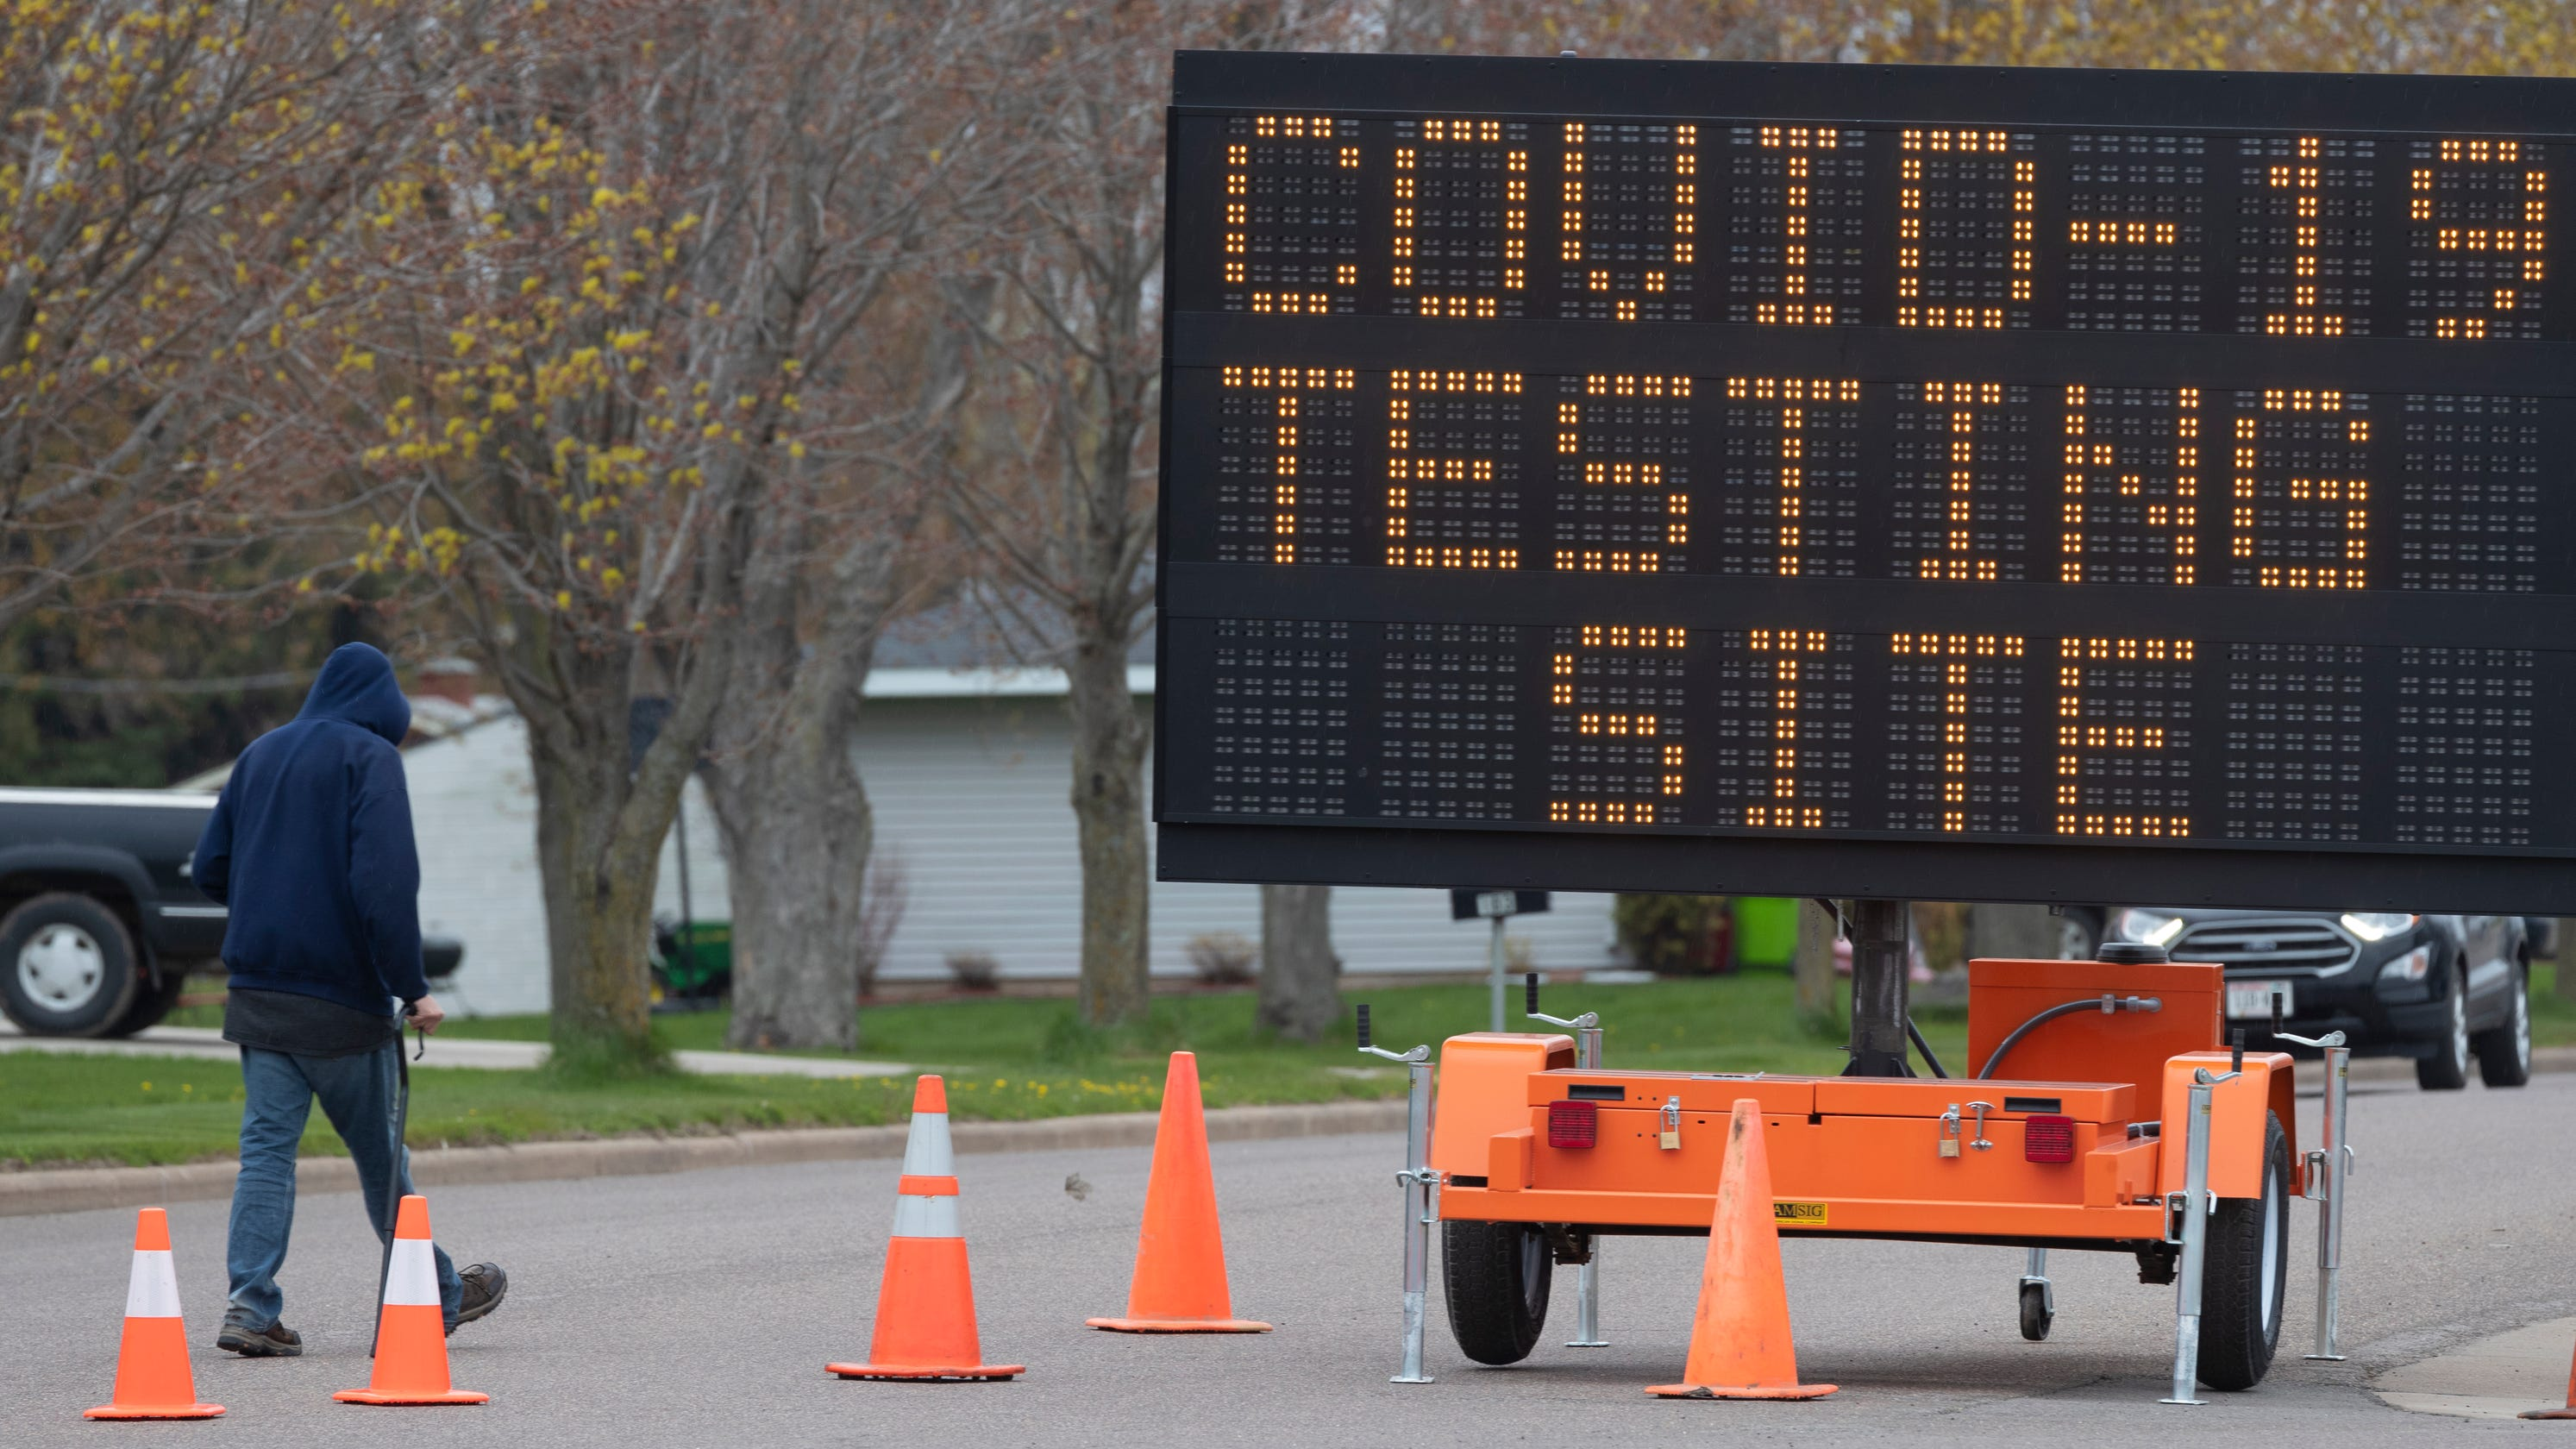 Where can you get tested for coronavirus in Milwaukee?